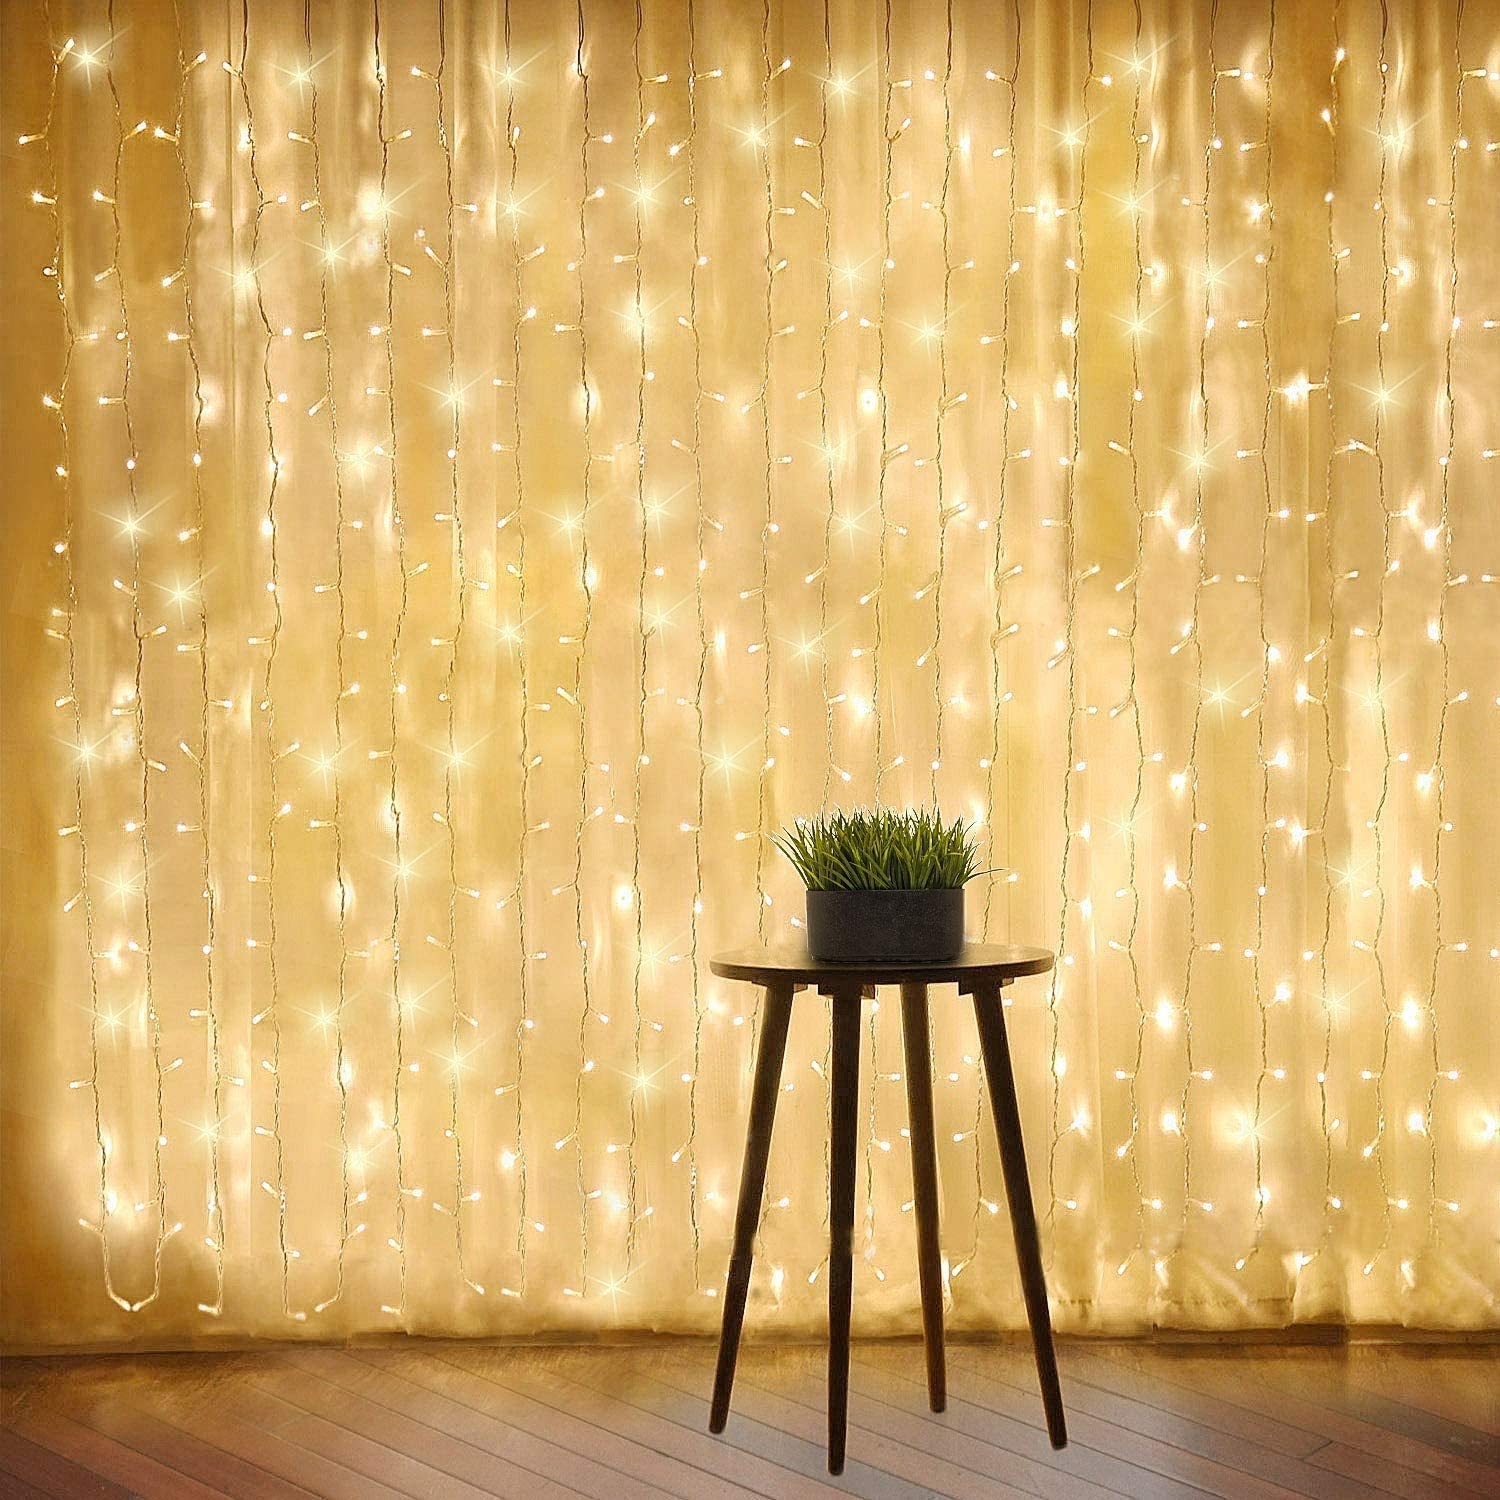 Warm White Window Curtain Lights, 8 Mode LED Fariy String Lights for Party Garden Room Wall Decorations